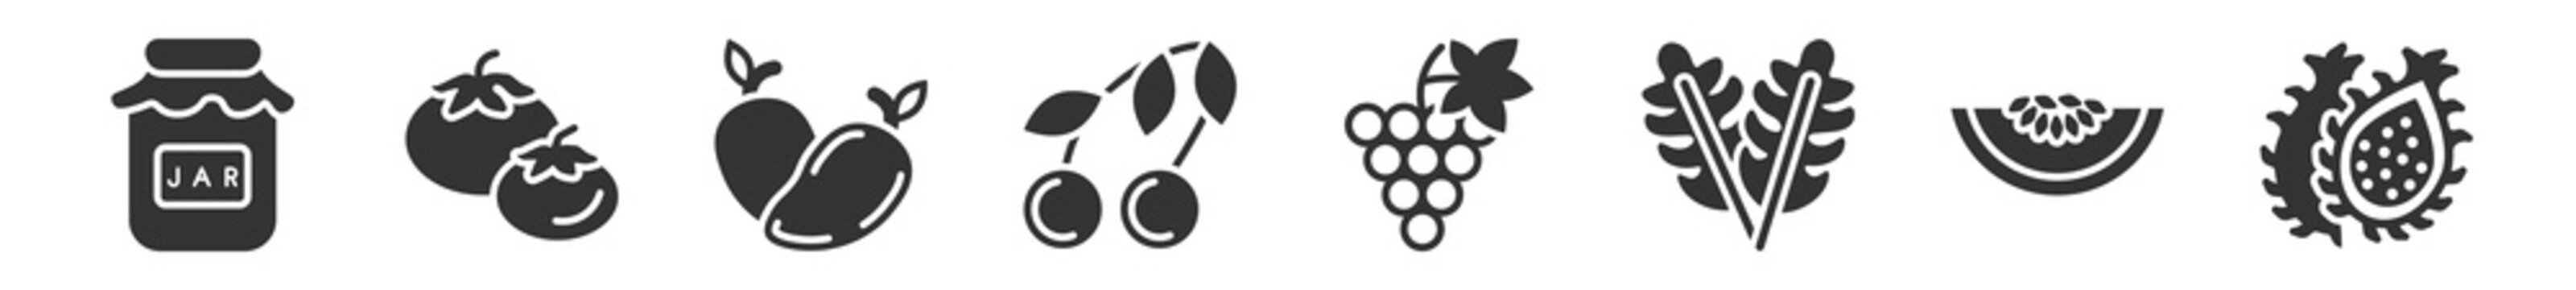 filled set of fruits and vegetables icons. glyph vector icons such as mason jar, tomato, mango, cherry, grapes, dragon fruit. vector illustration.